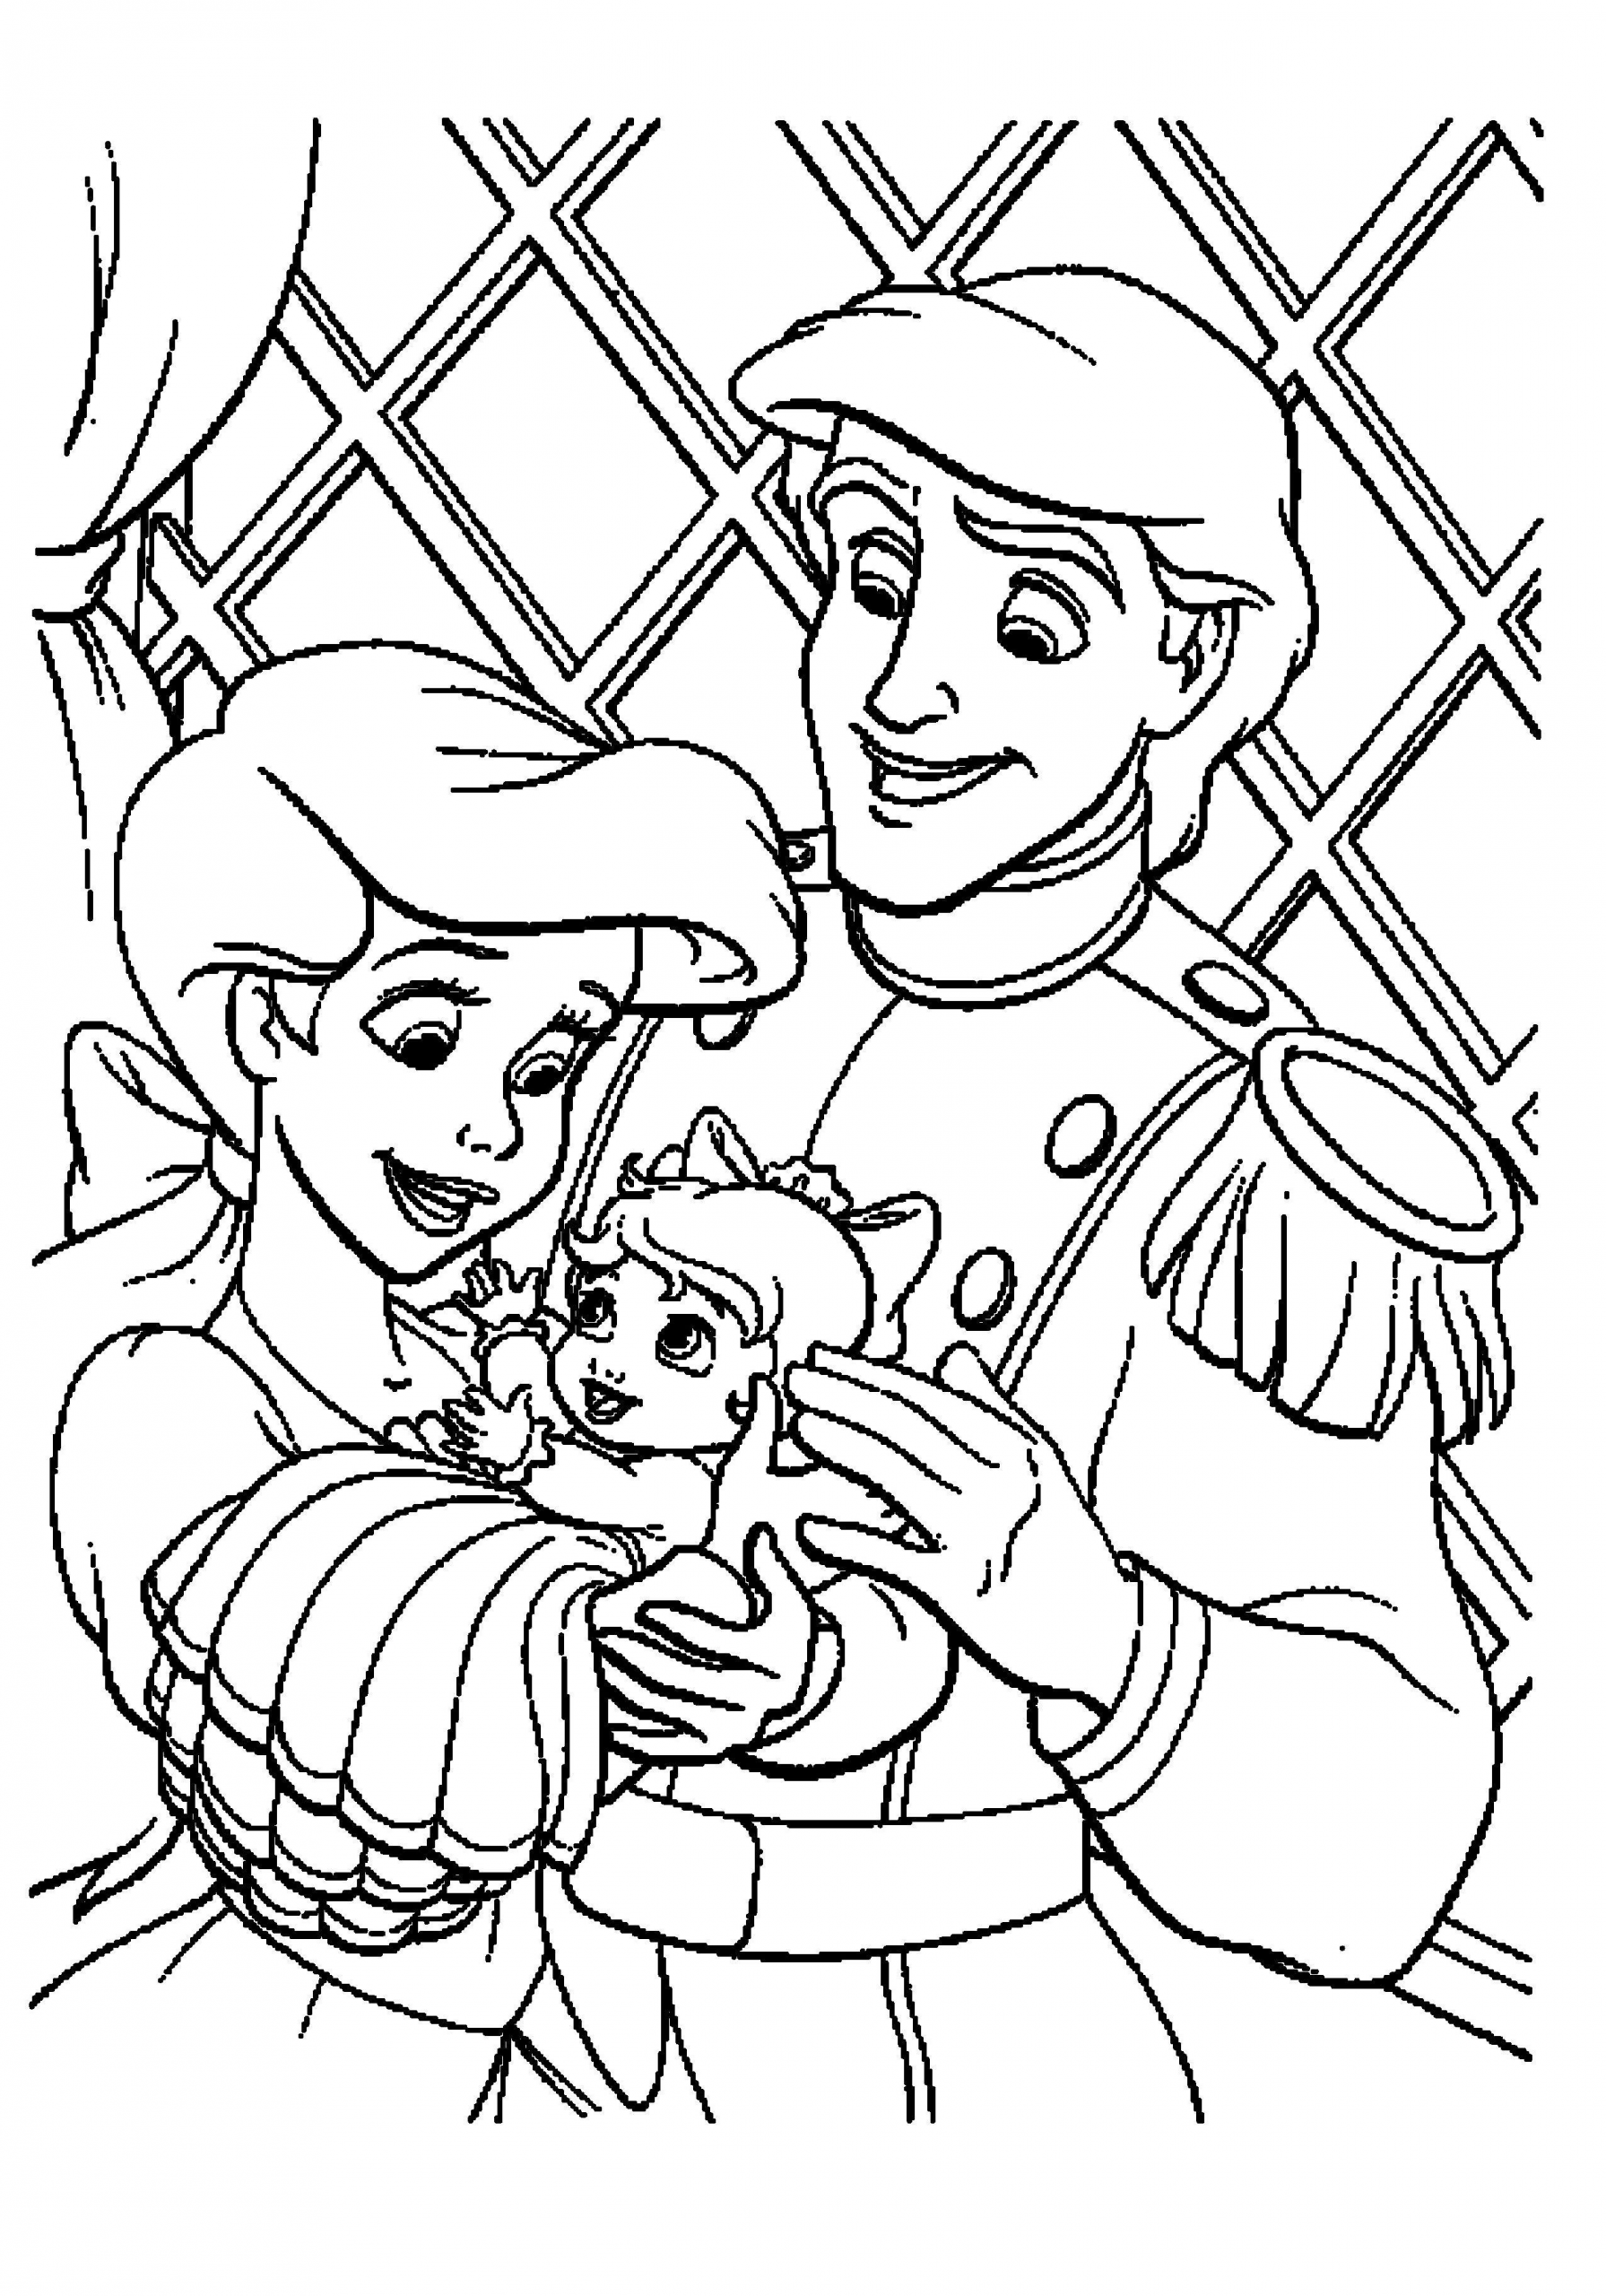 Coloring Page Of The Little Mermaid